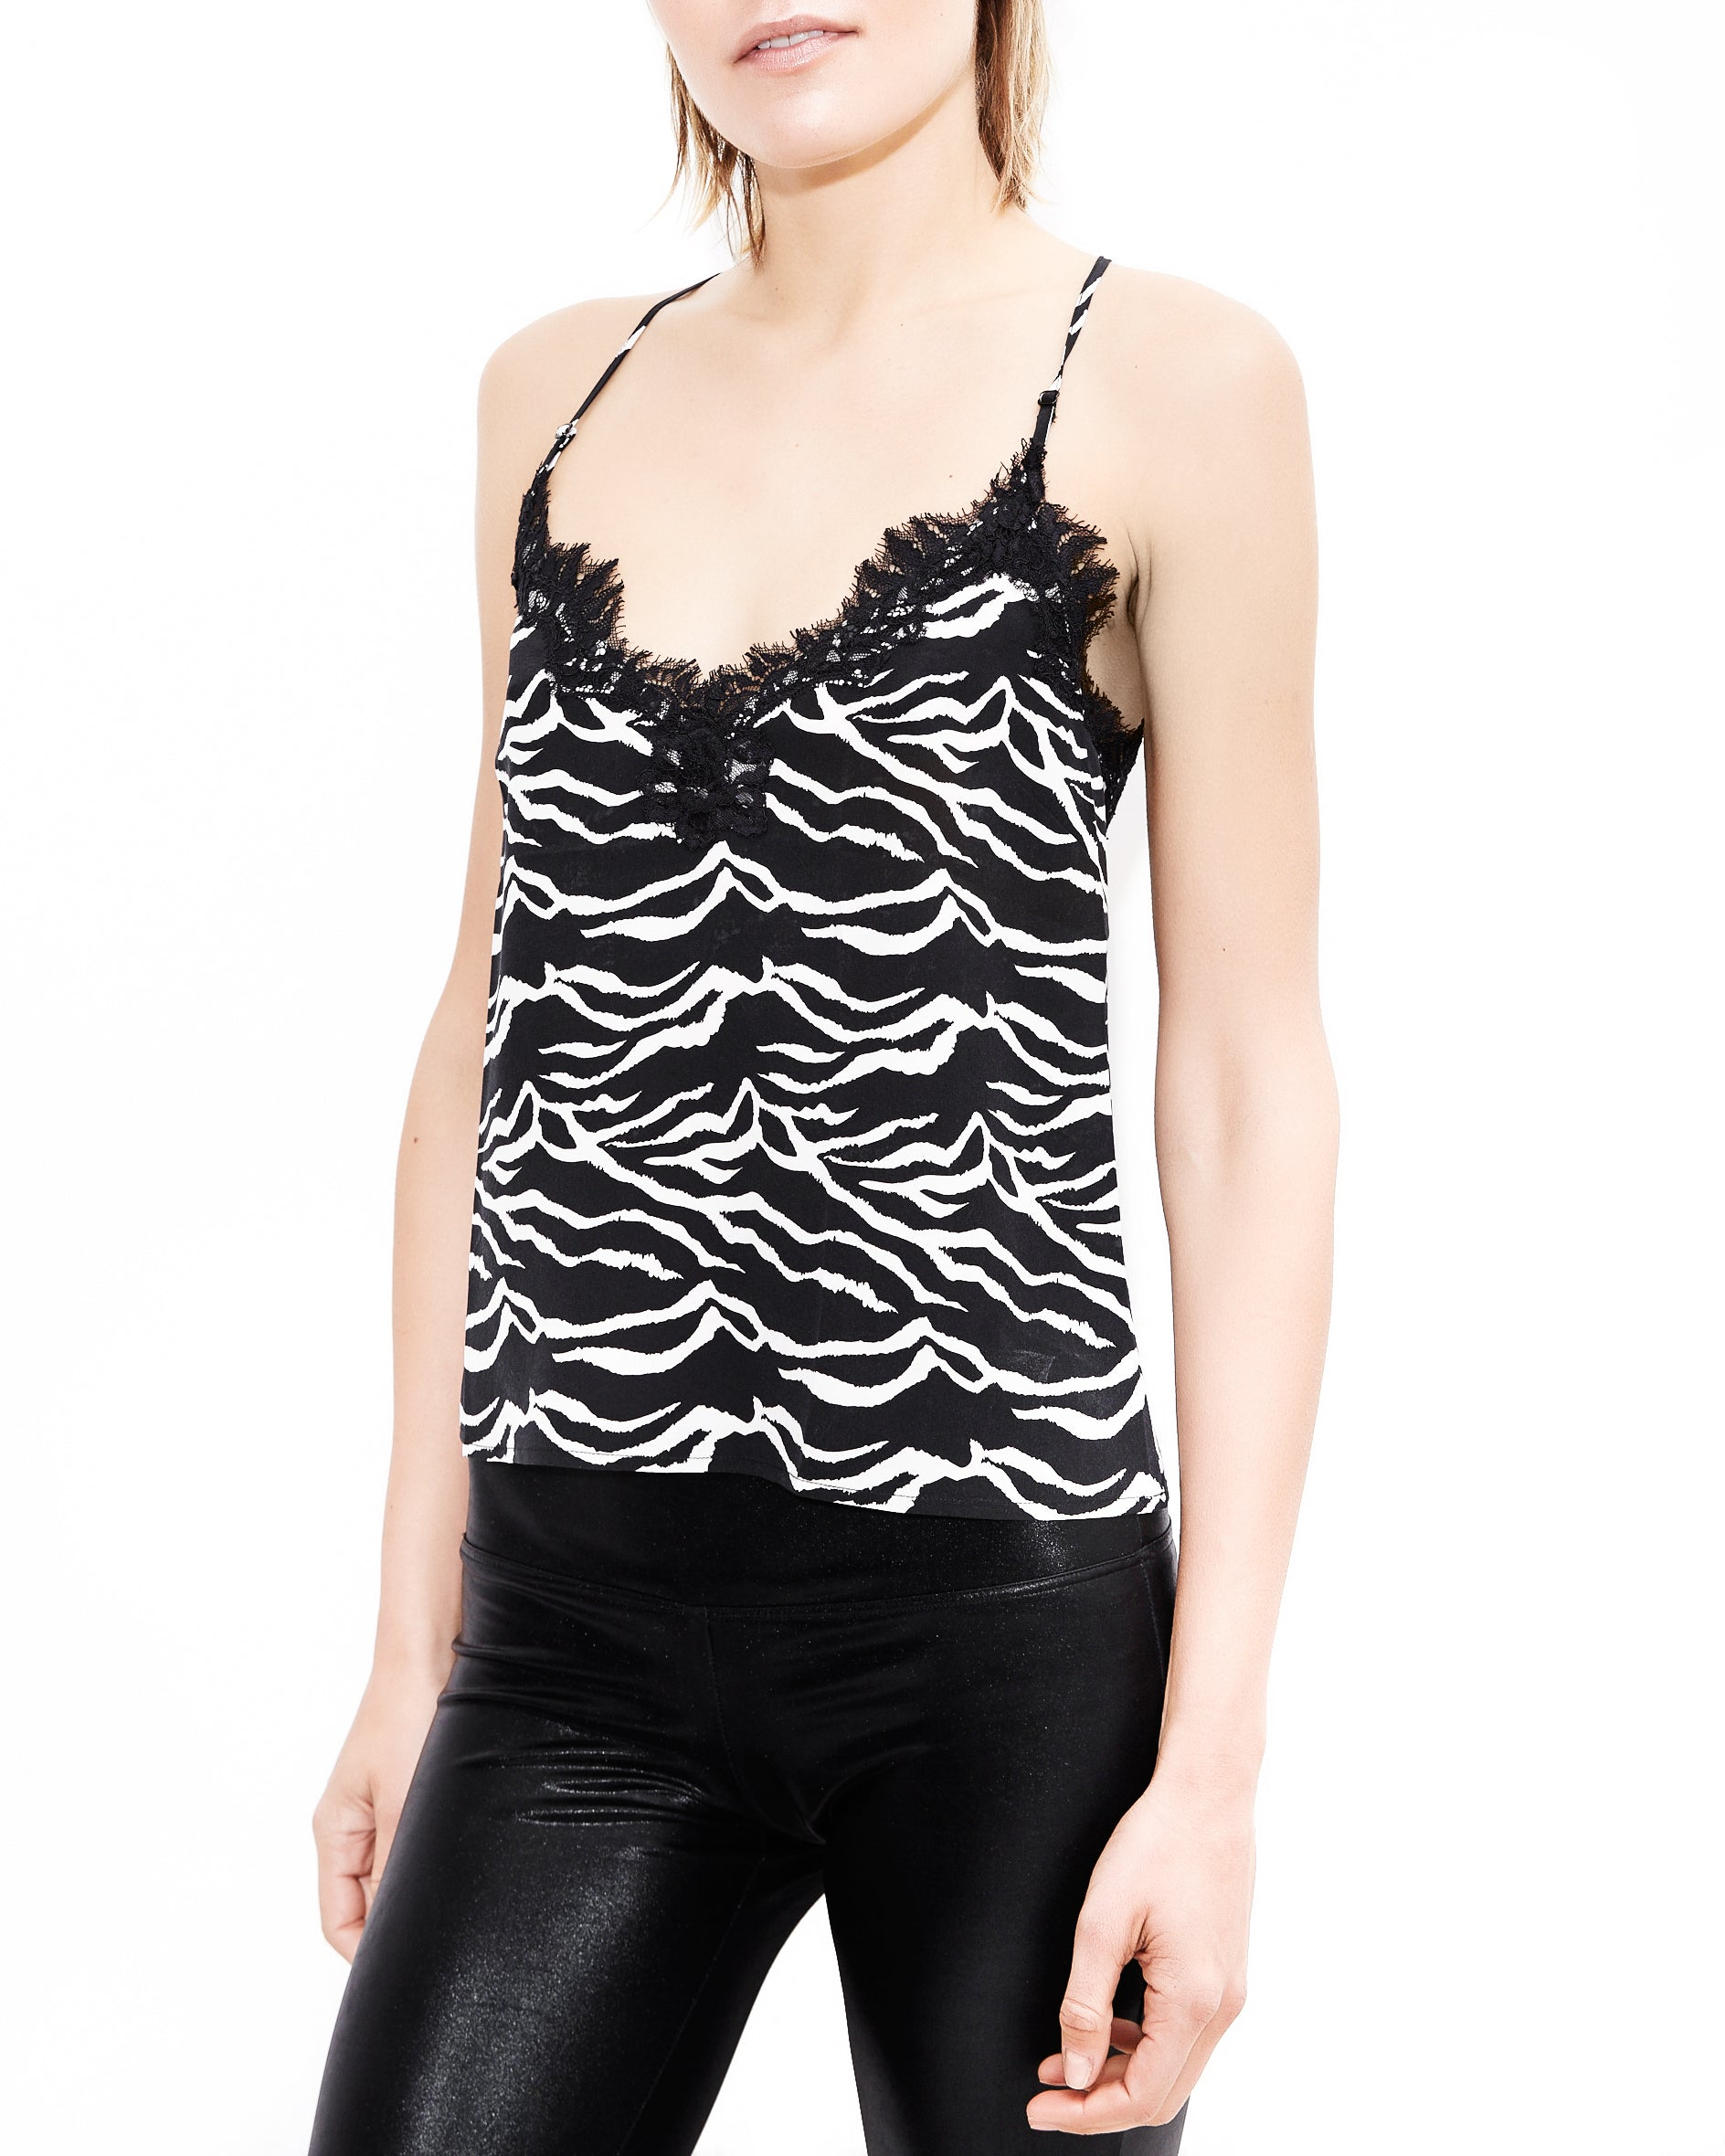 Lily Lace Zebra Top. Generation Love. NYC Modern Women's Clothing